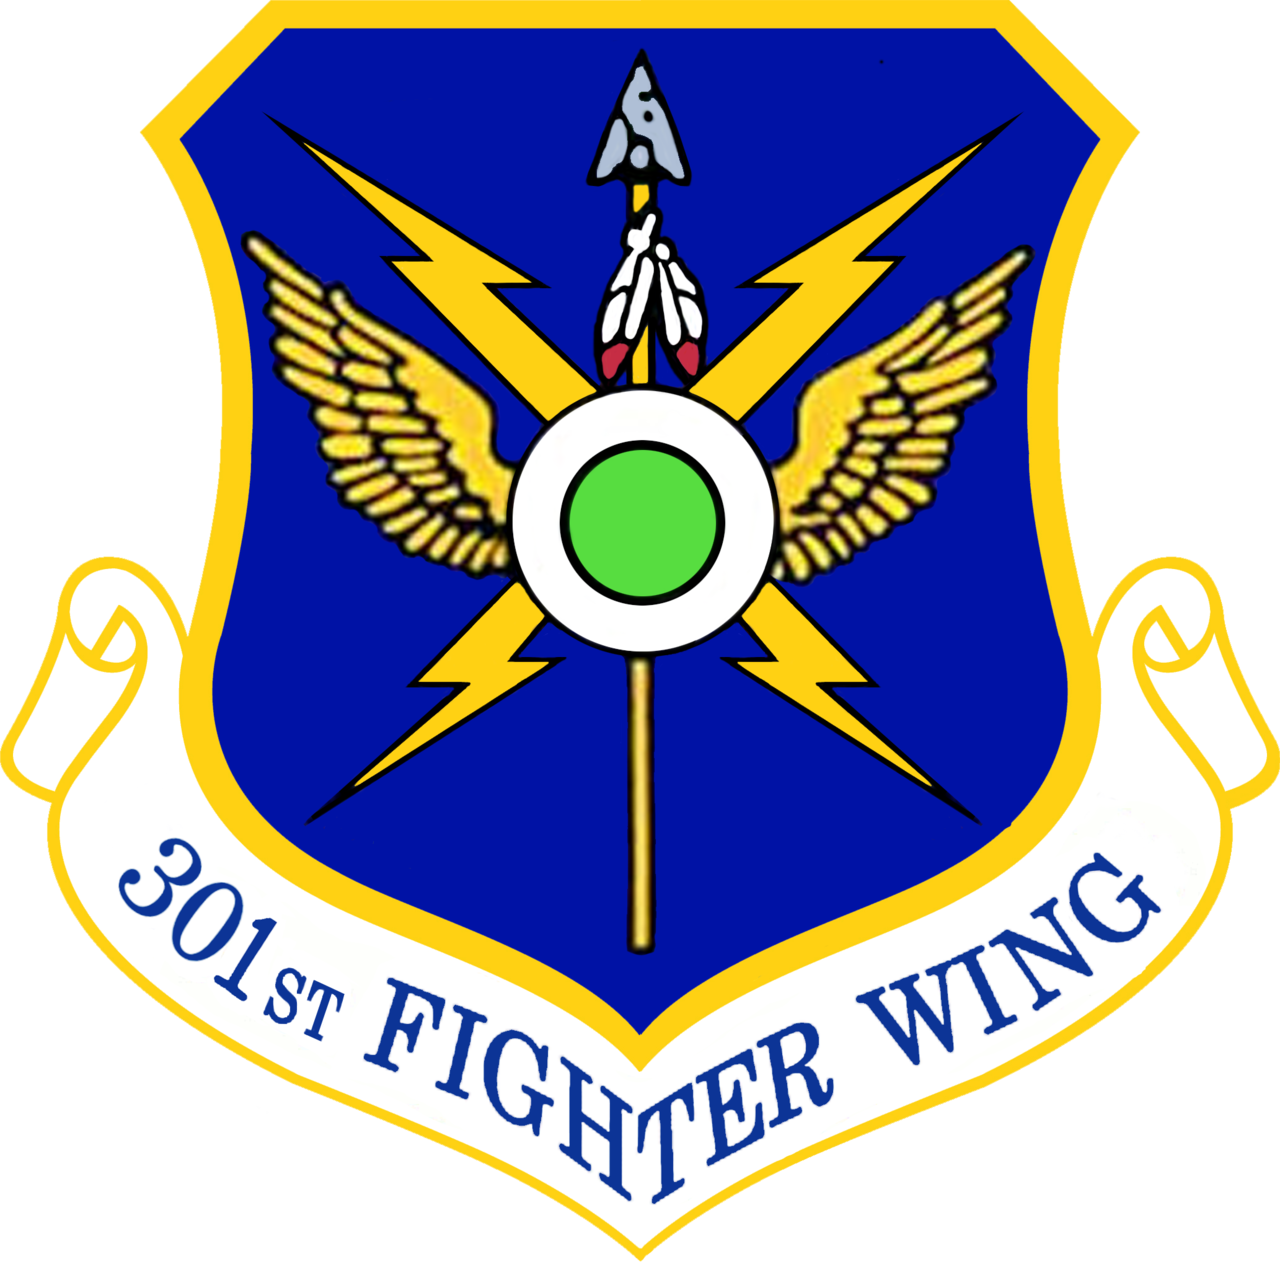 301st Fighter Wing Wikipedia Fighter Usaf United States Air Force